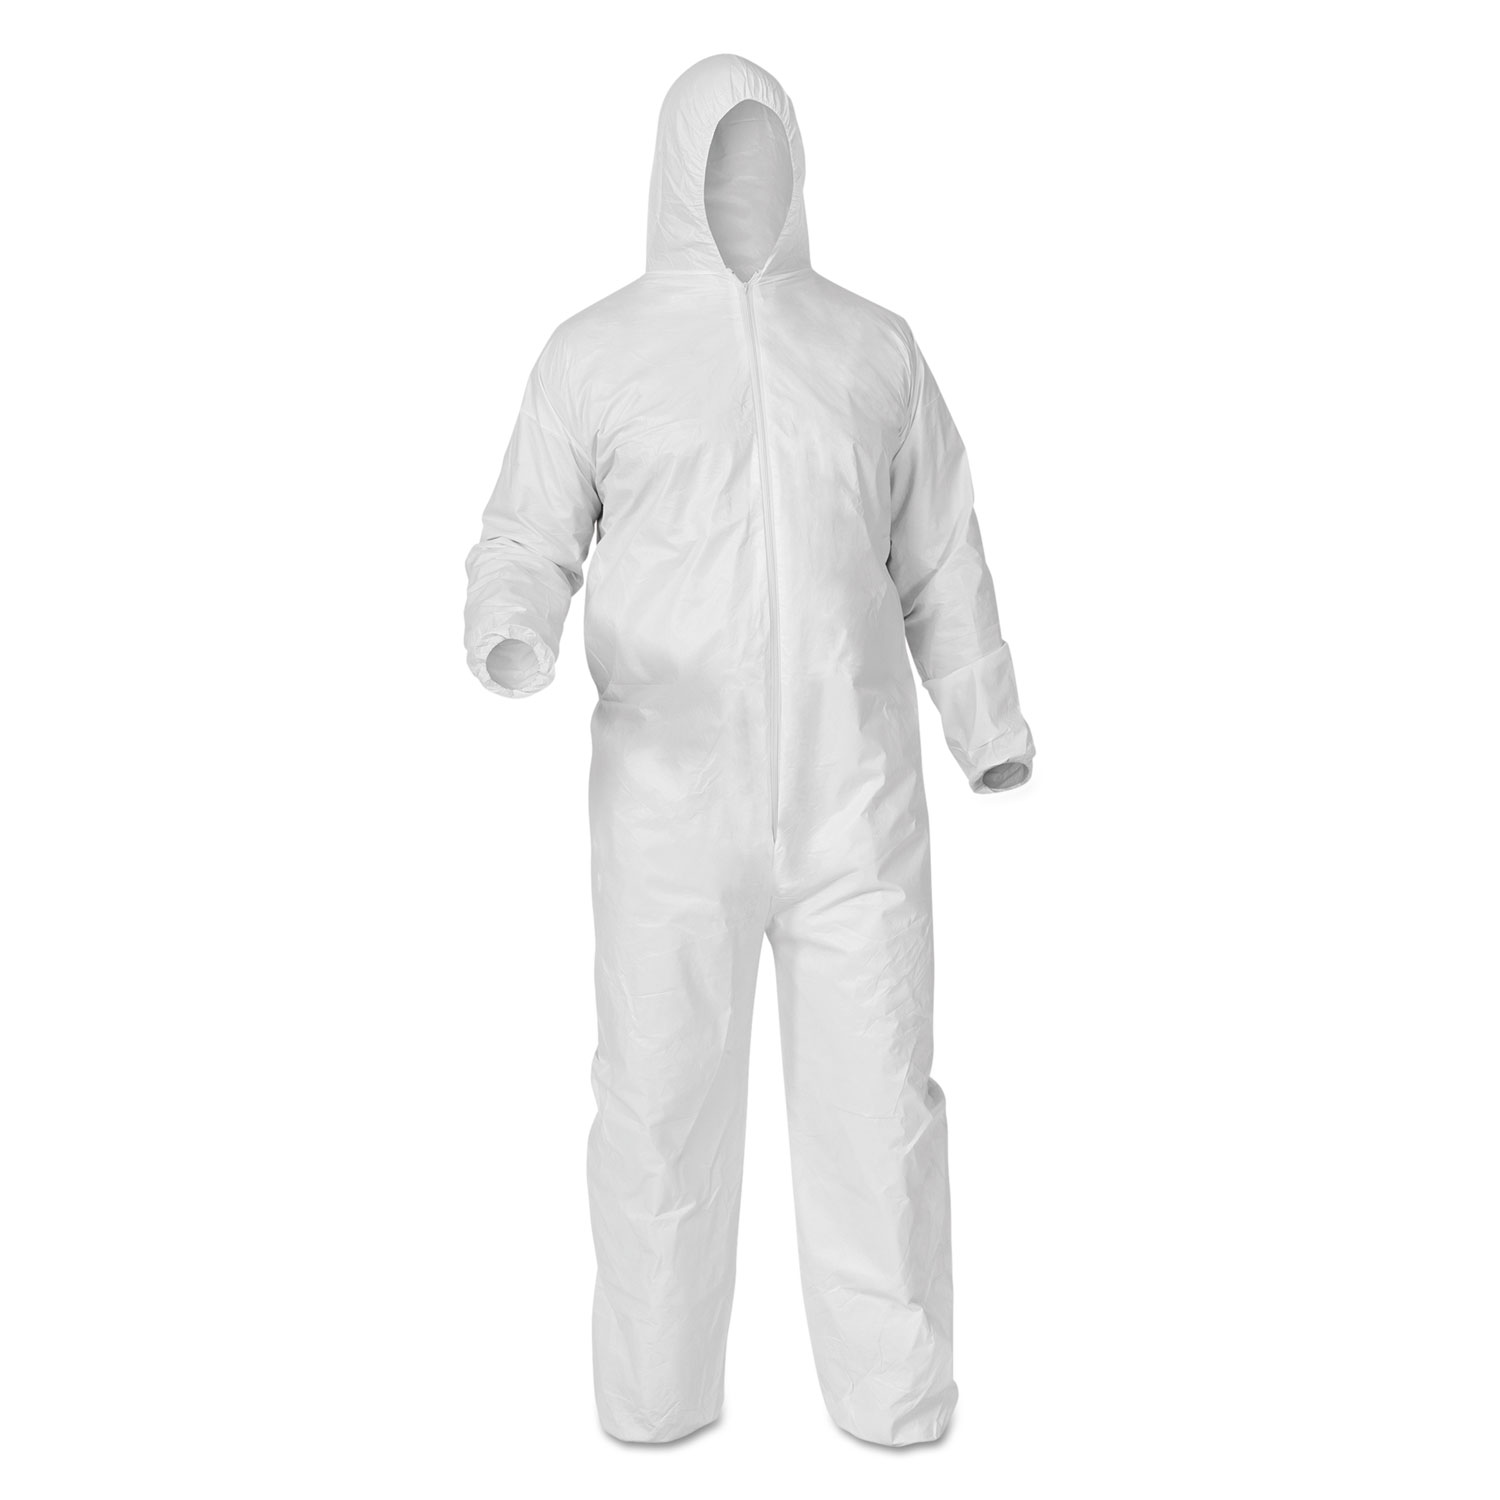 KleenGuard™ 44304 A40 Coveralls 1 Suit White XL